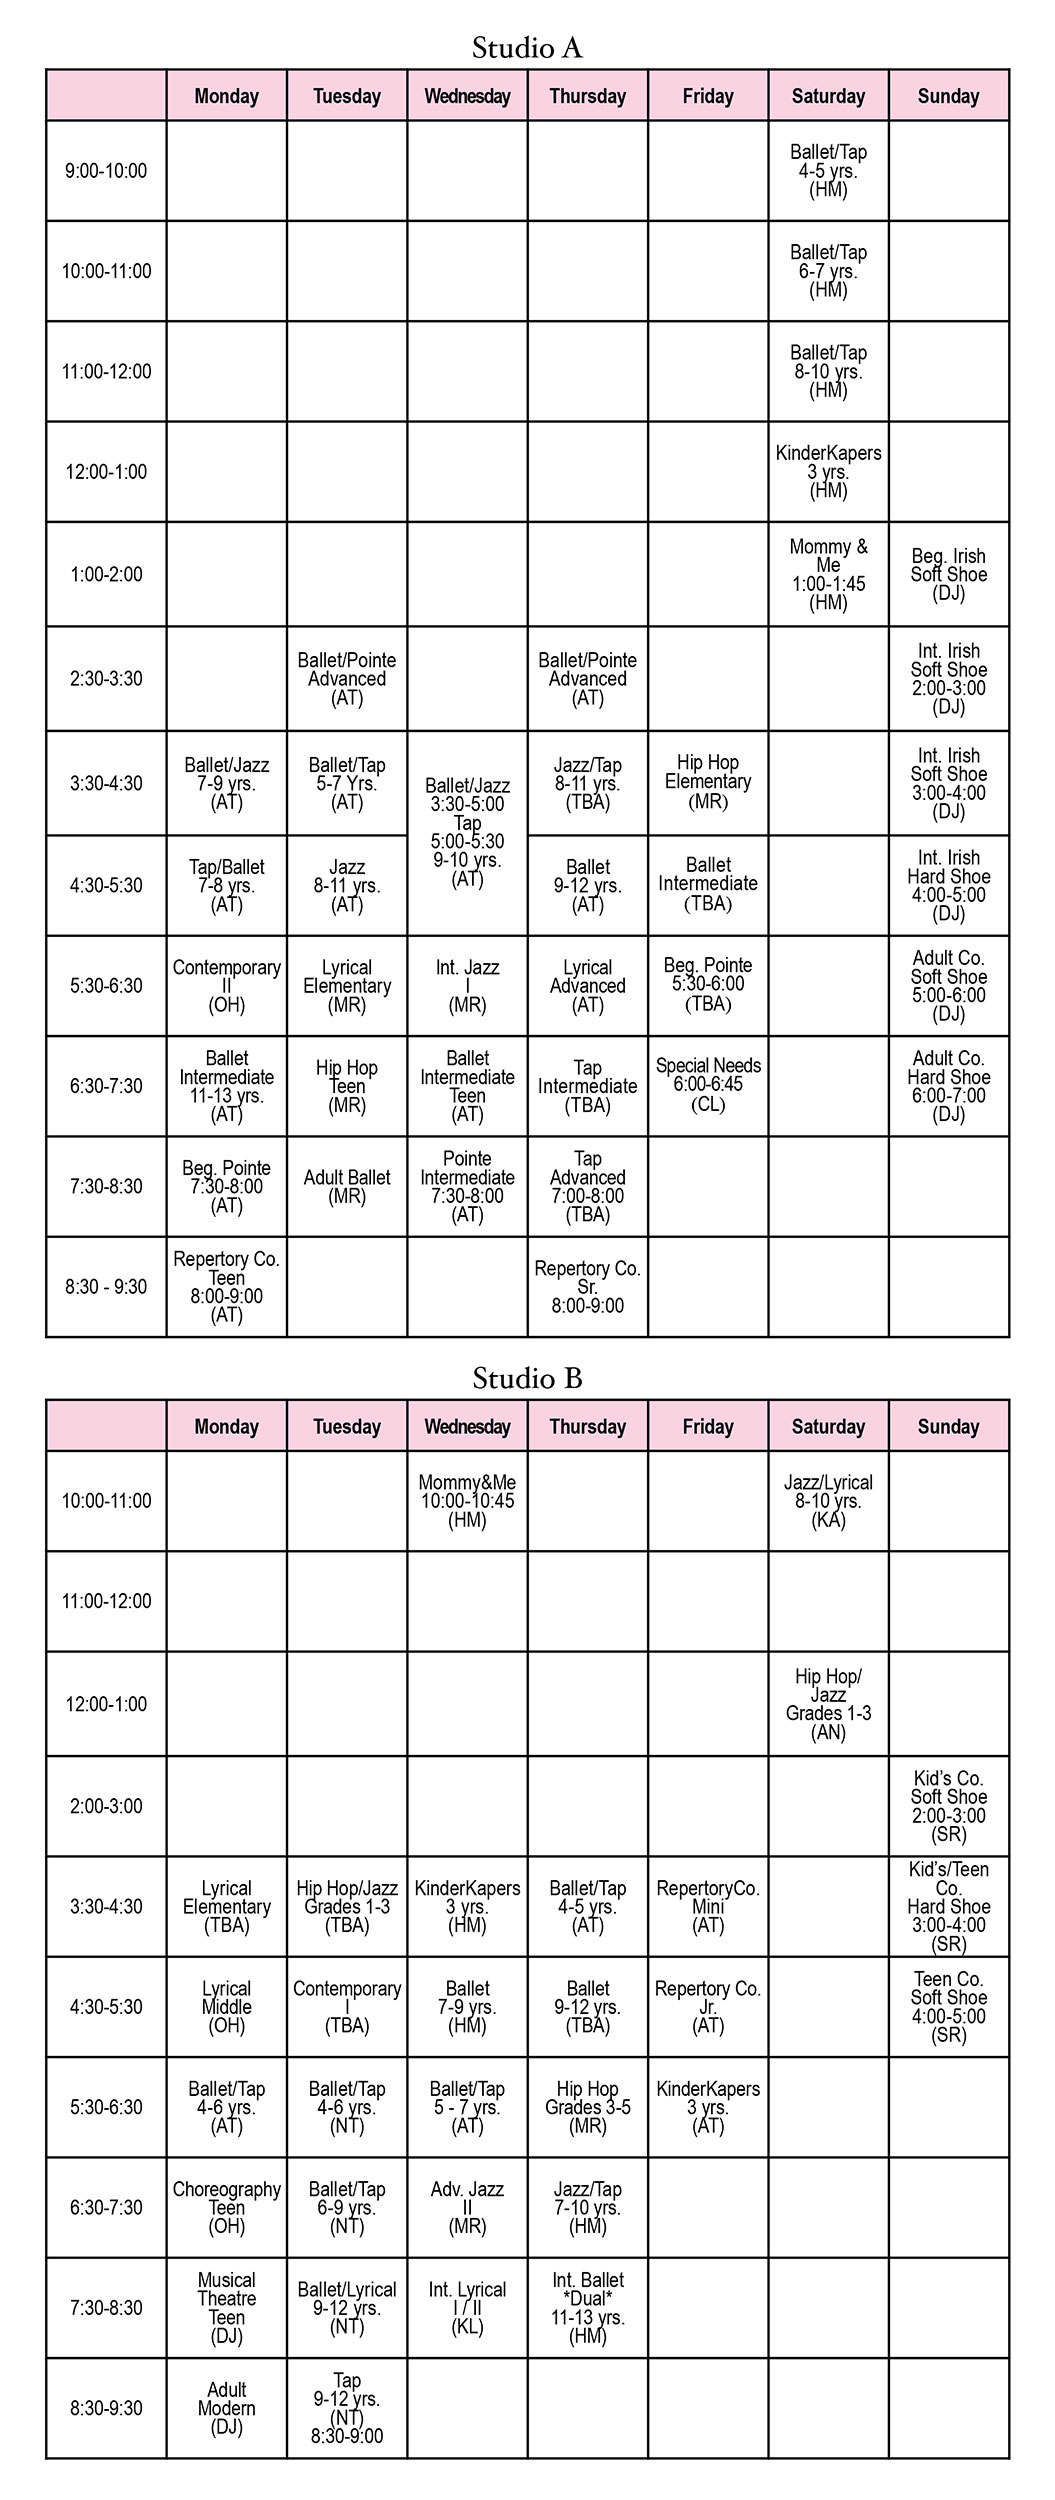 Dance class schedule for 2020-2021 at Sharon Davis School of Dance in Tallahassee, Florida.